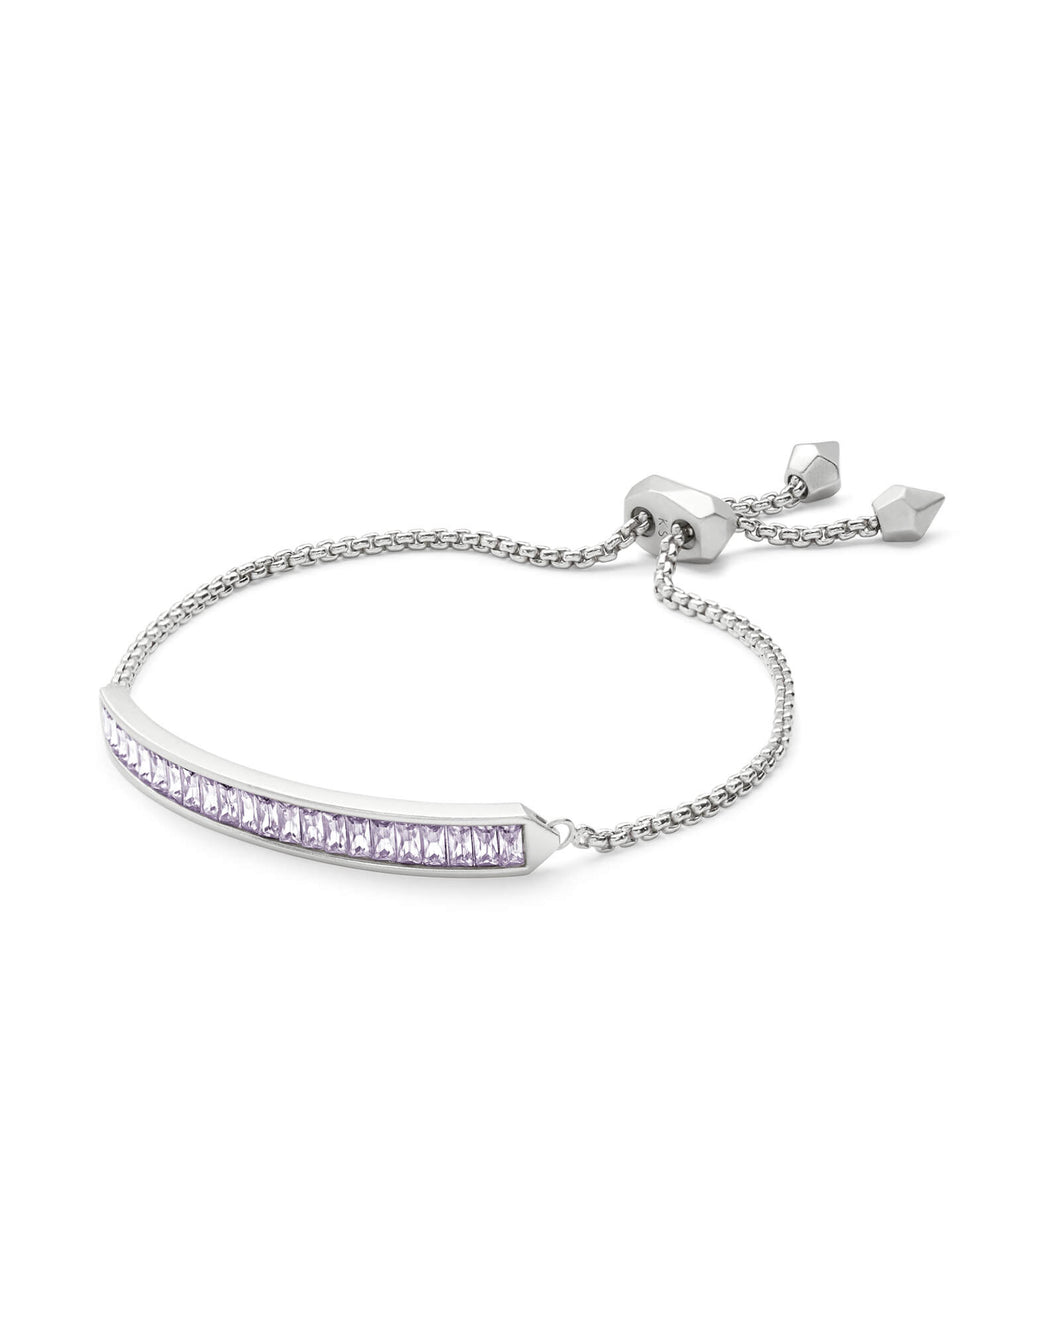 Jack Silver Adjustable Chain Bracelet-Lilac Mix